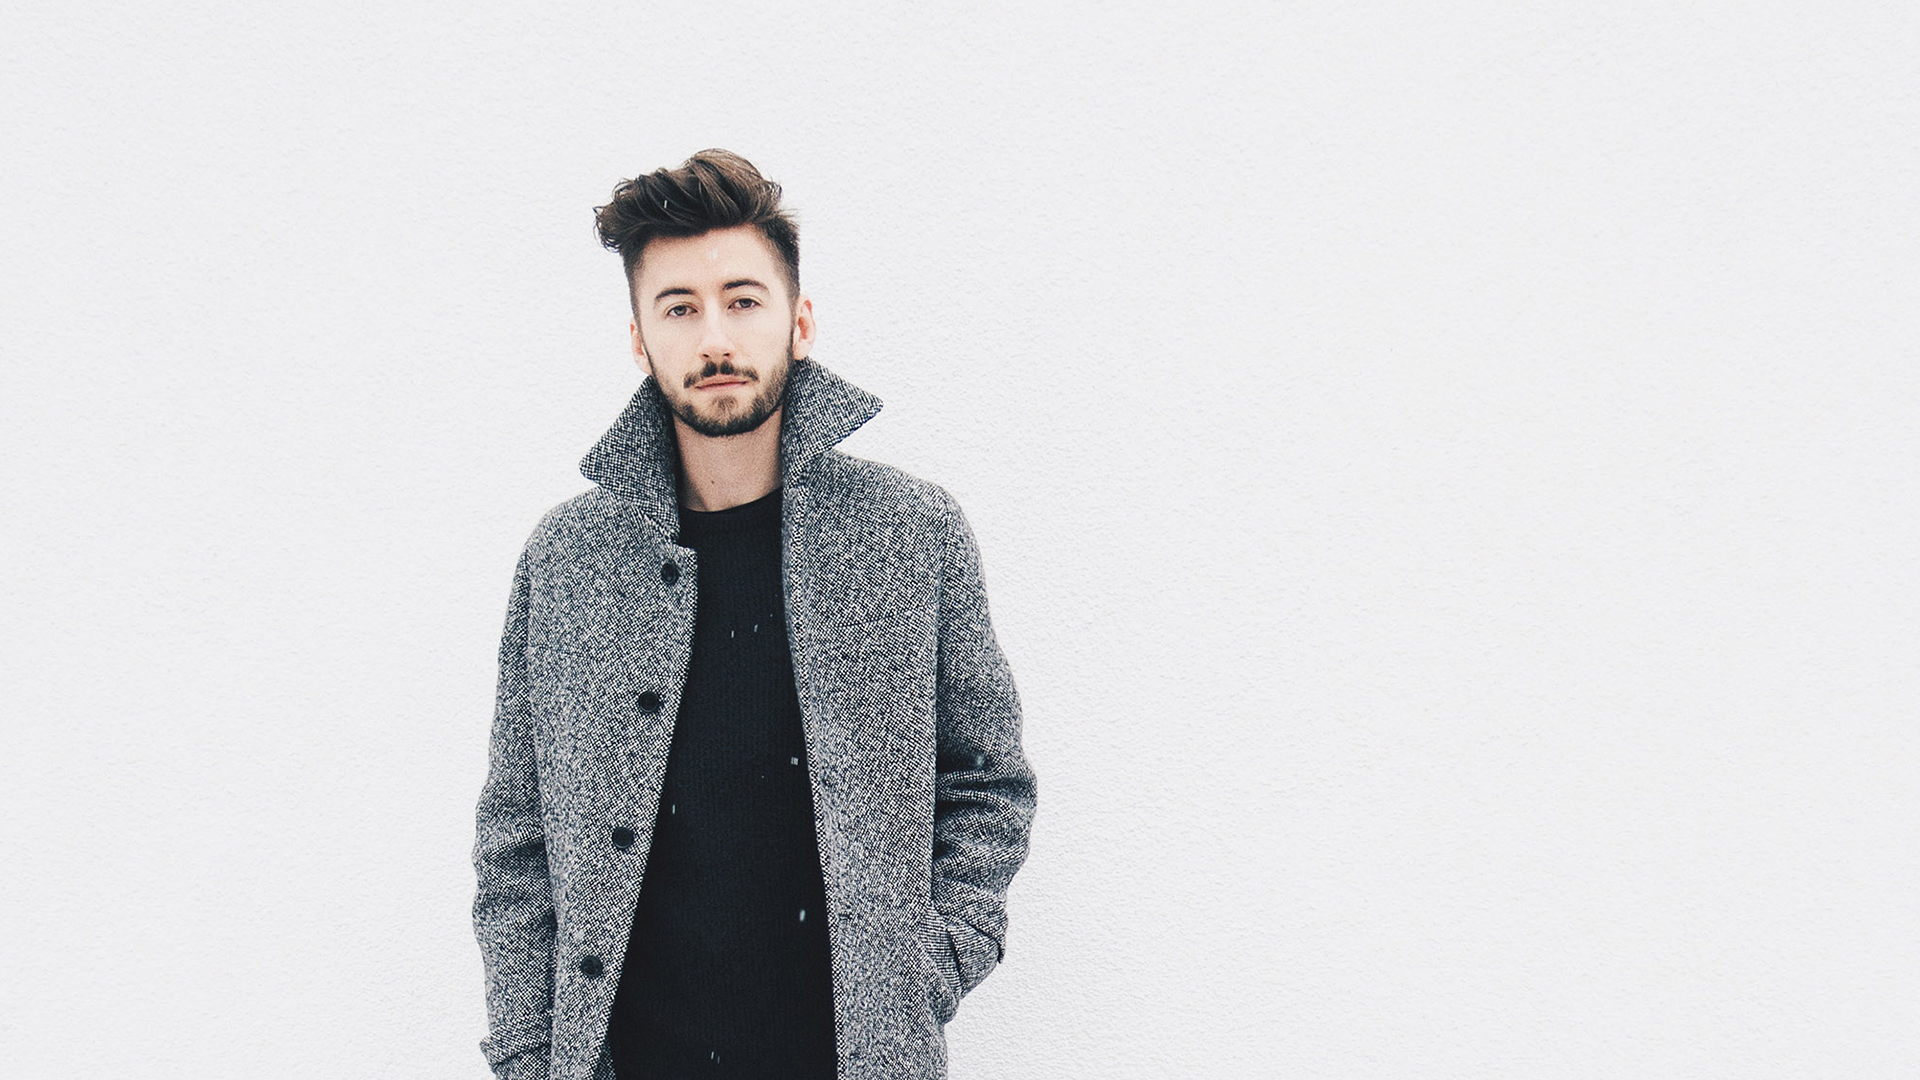 Guy standing in front of white wall with a grey coat on